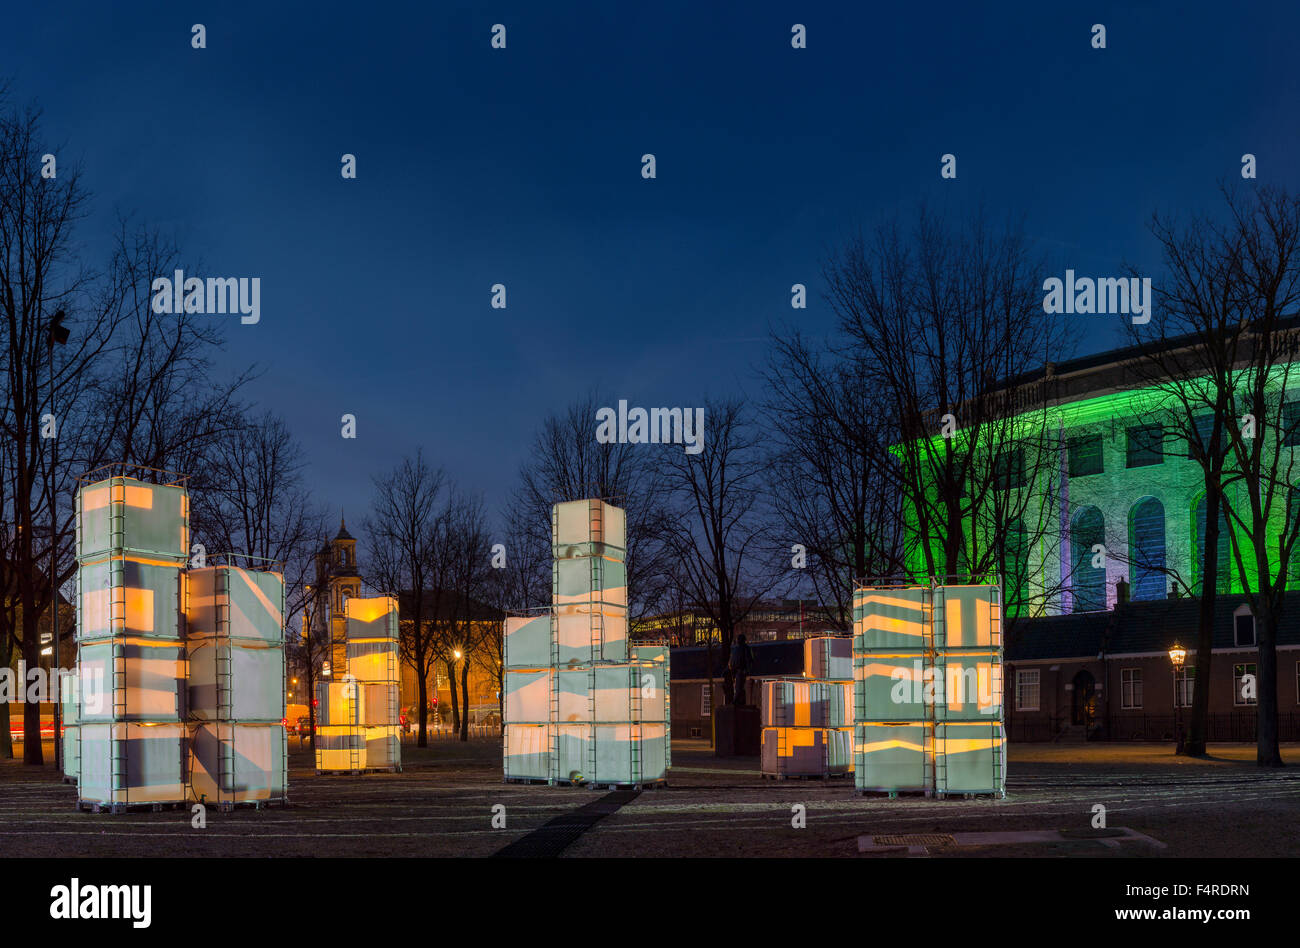 Netherlands, Holland, Europe, village, forest, wood, trees, winter, Illumination, Light, sculpture, Jonas Daniel - Stock Image